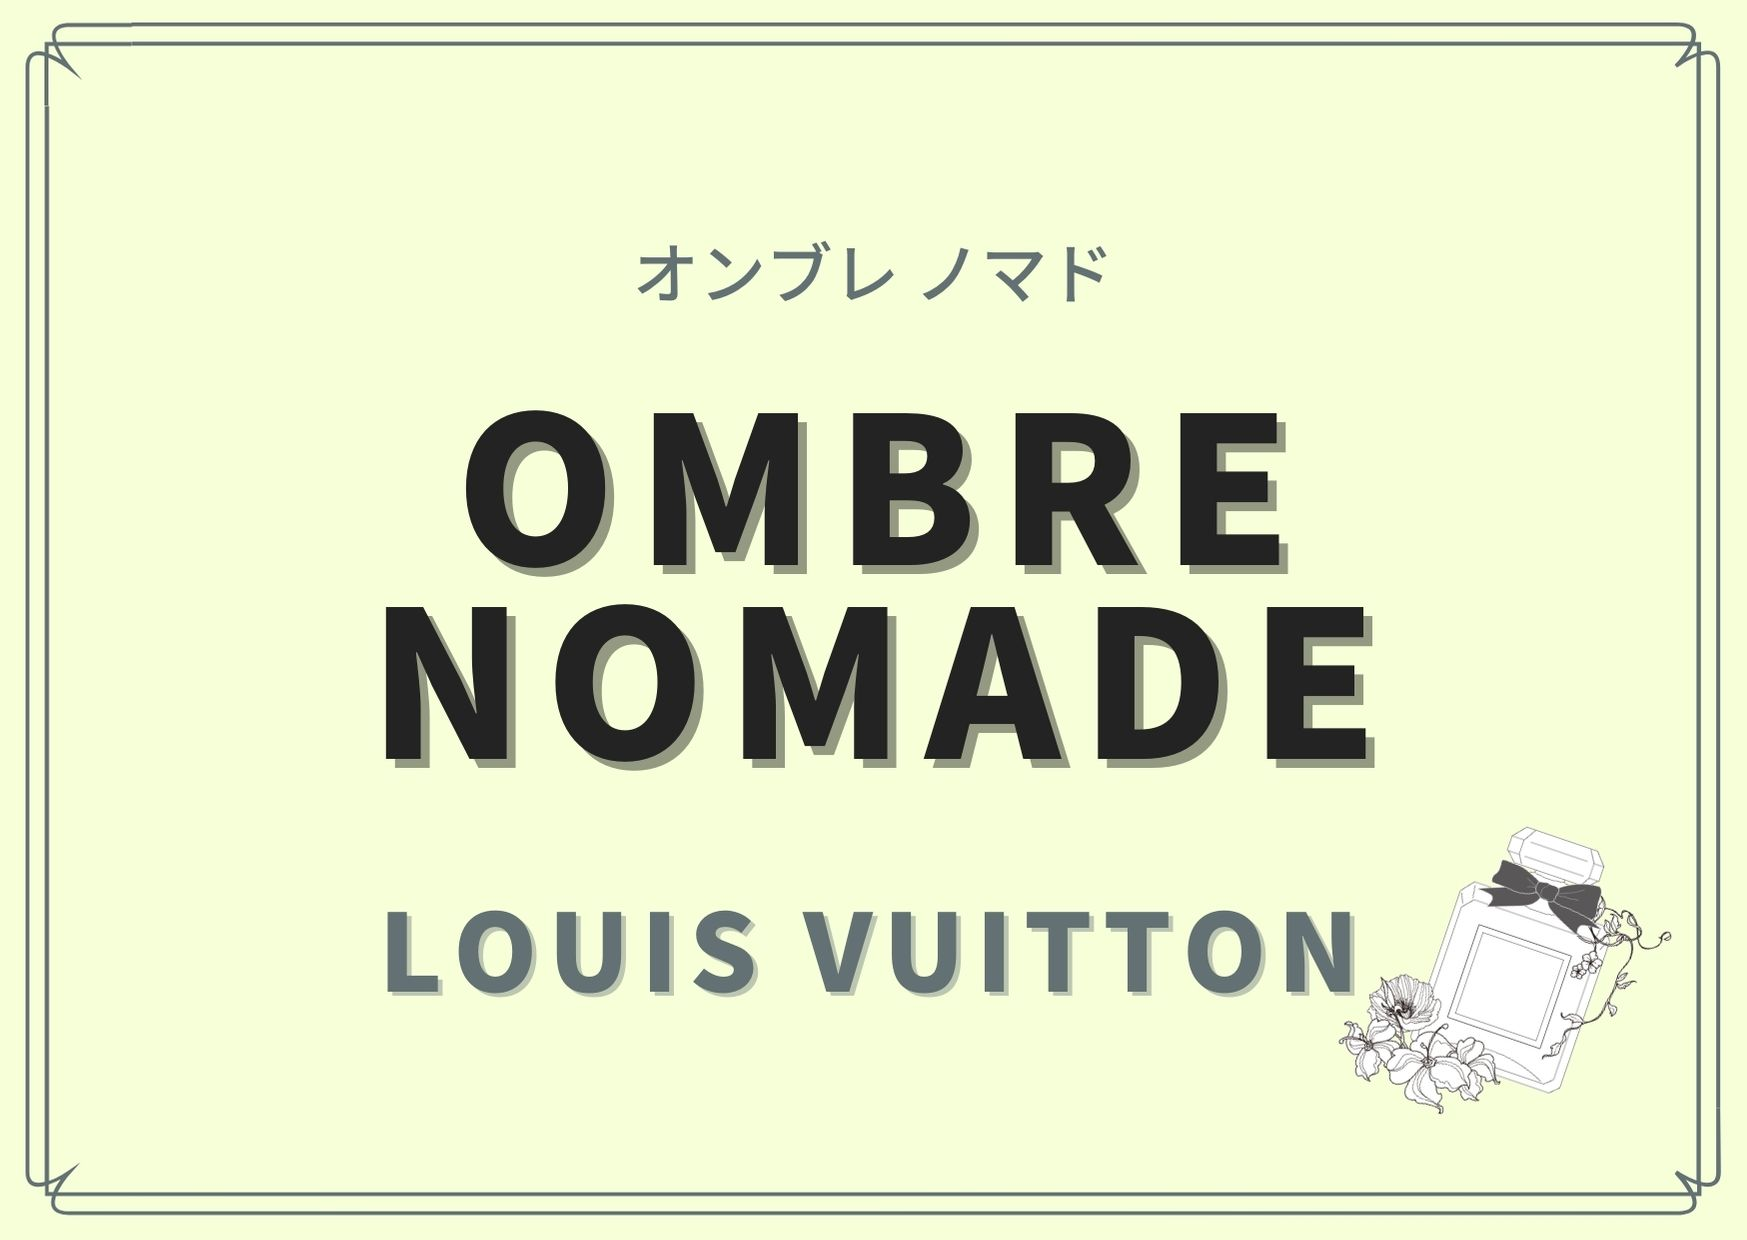 OMBRE NOMADE(オンブレ ノマド)/LOUIS VUITTON(ルイ ヴィトン)